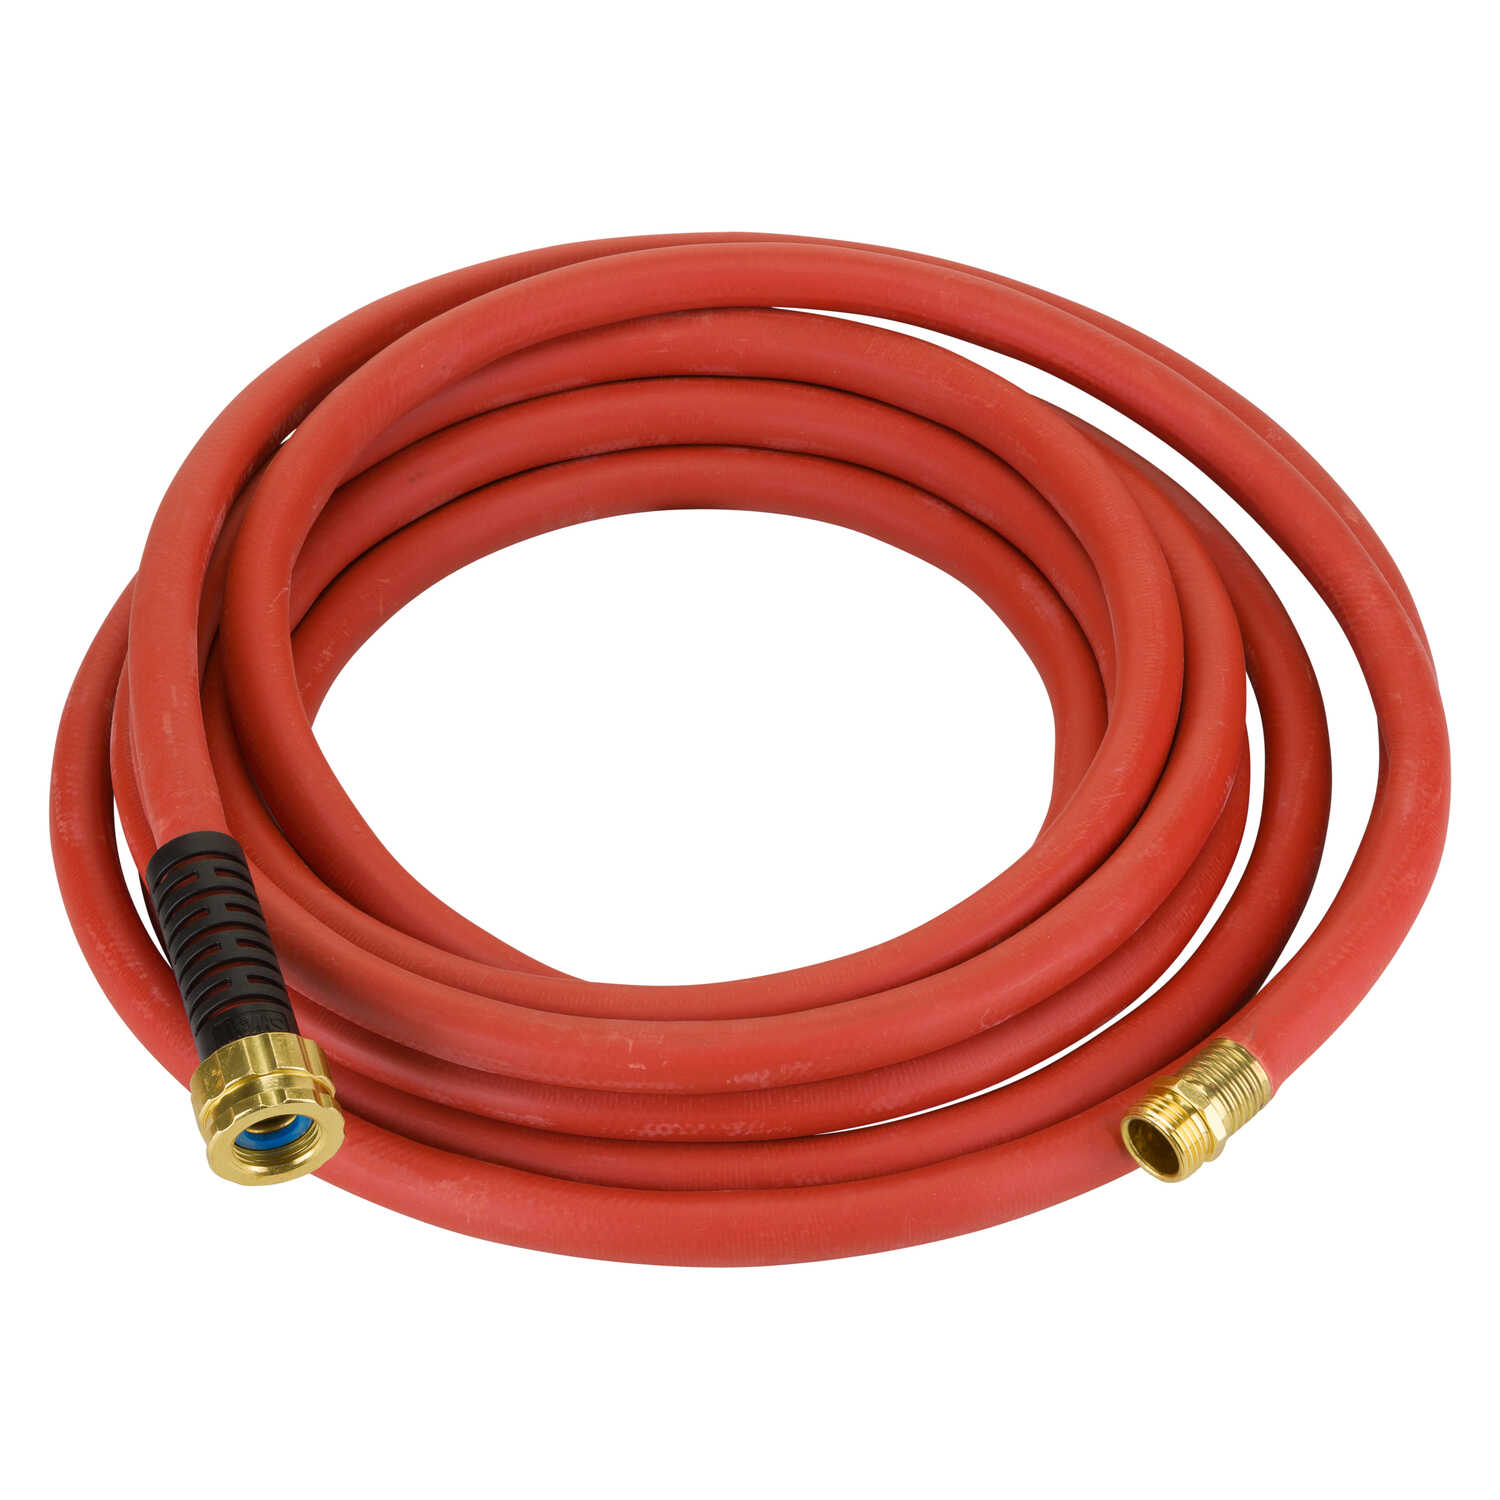 Ace  5/8 in. Dia. x 25 ft. L Hot Water  Red  Rubber  Hose